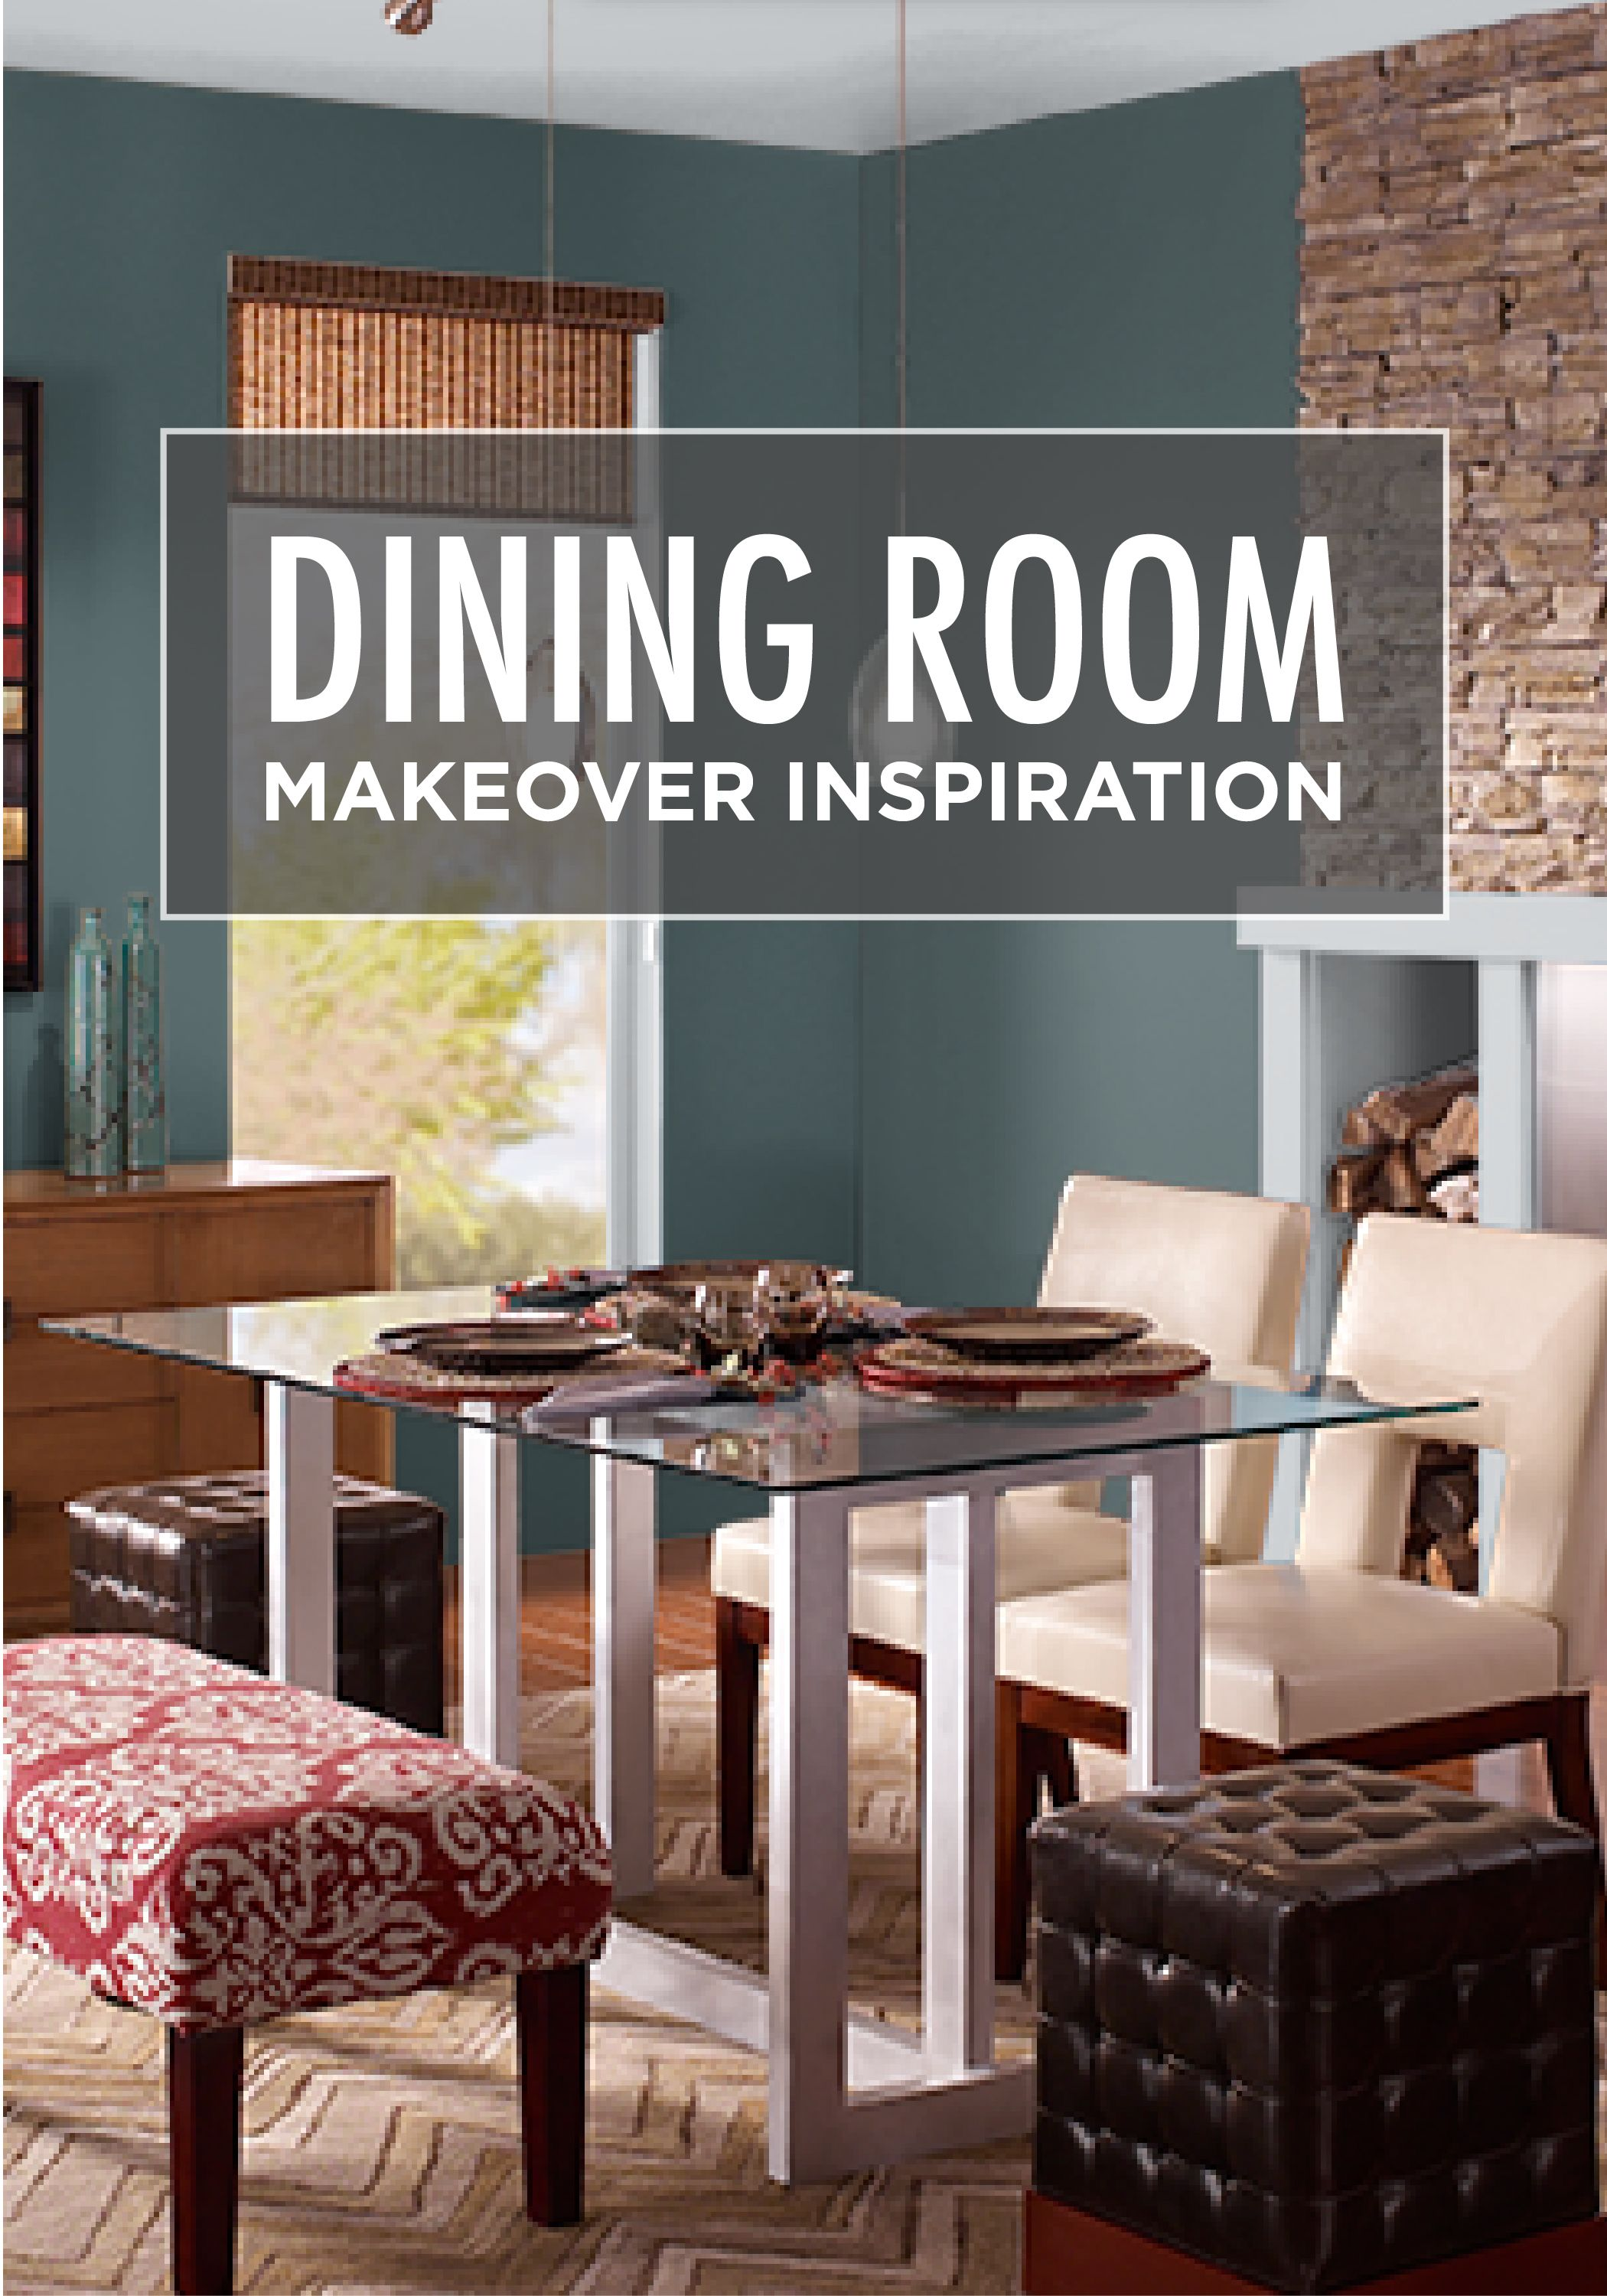 Delightful BEHR Paint In Underwater And Galactic Tint Will Make The Perfect Wall Color  Combination To Pair With Your Eclectic Dining Room Decor. Part 6